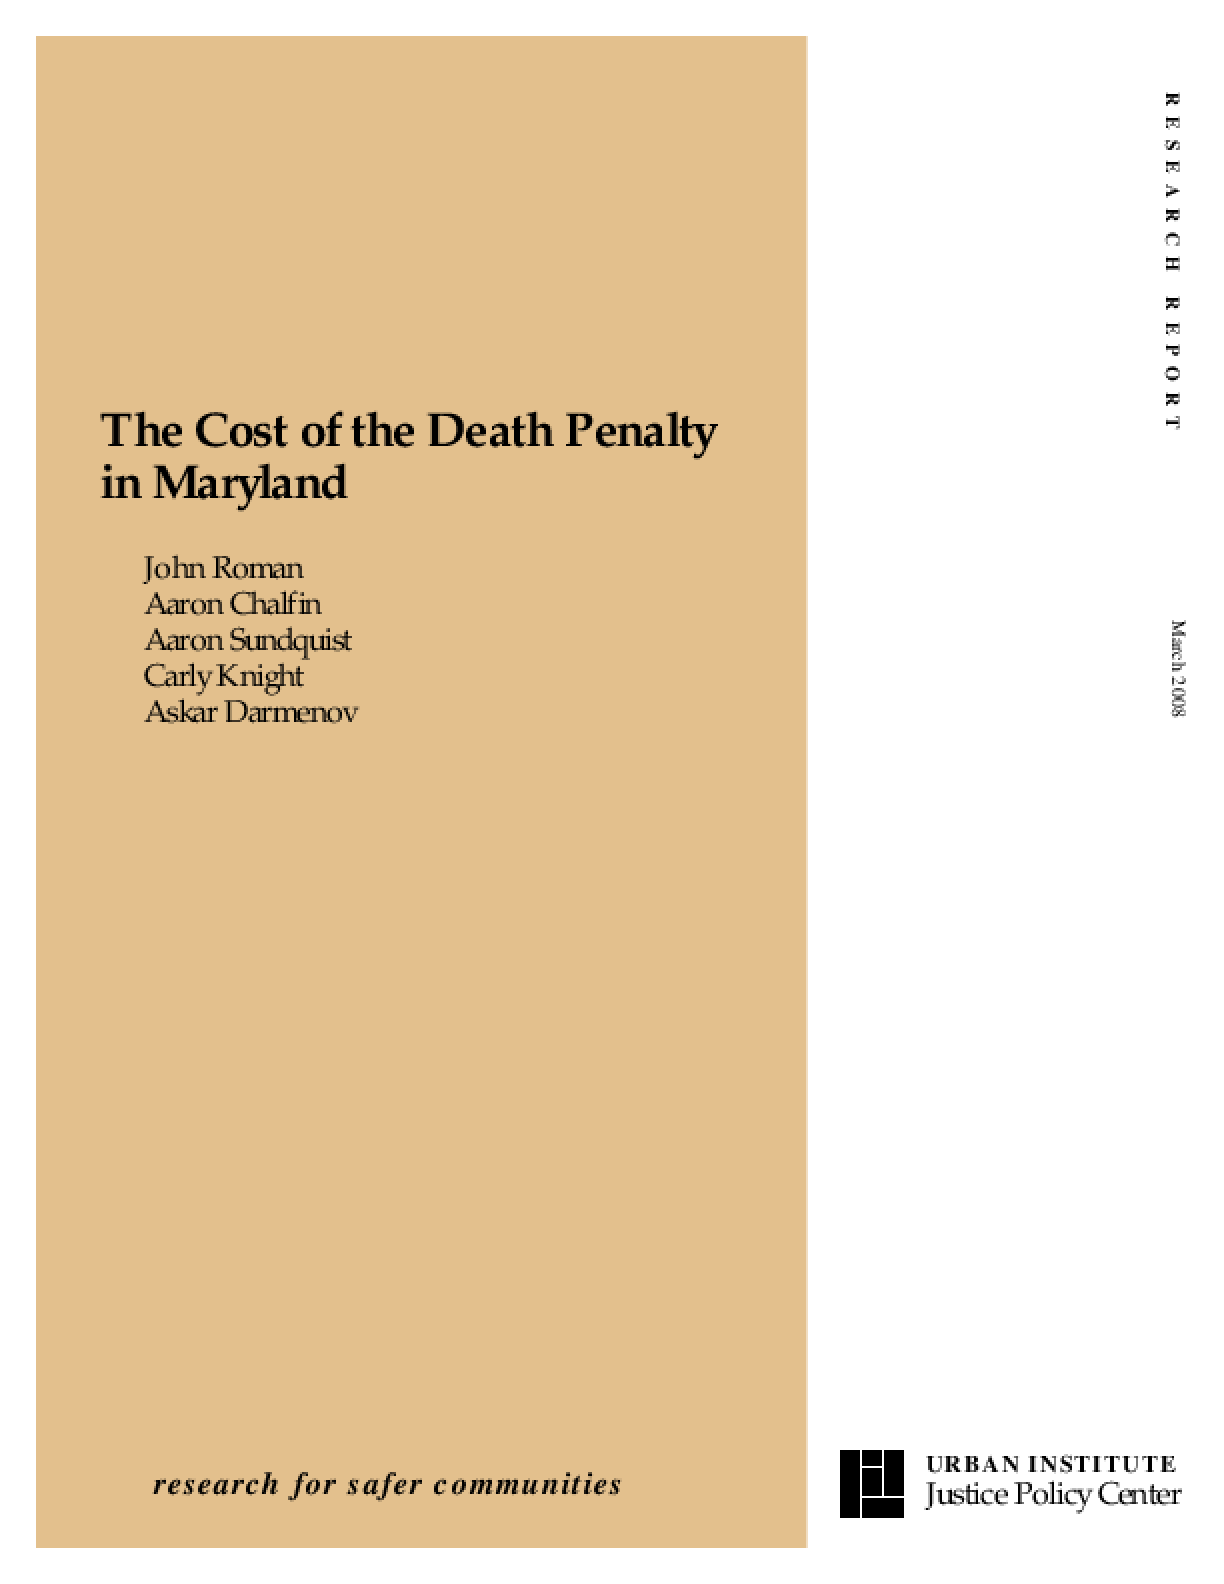 The Cost of the Death Penalty in Maryland